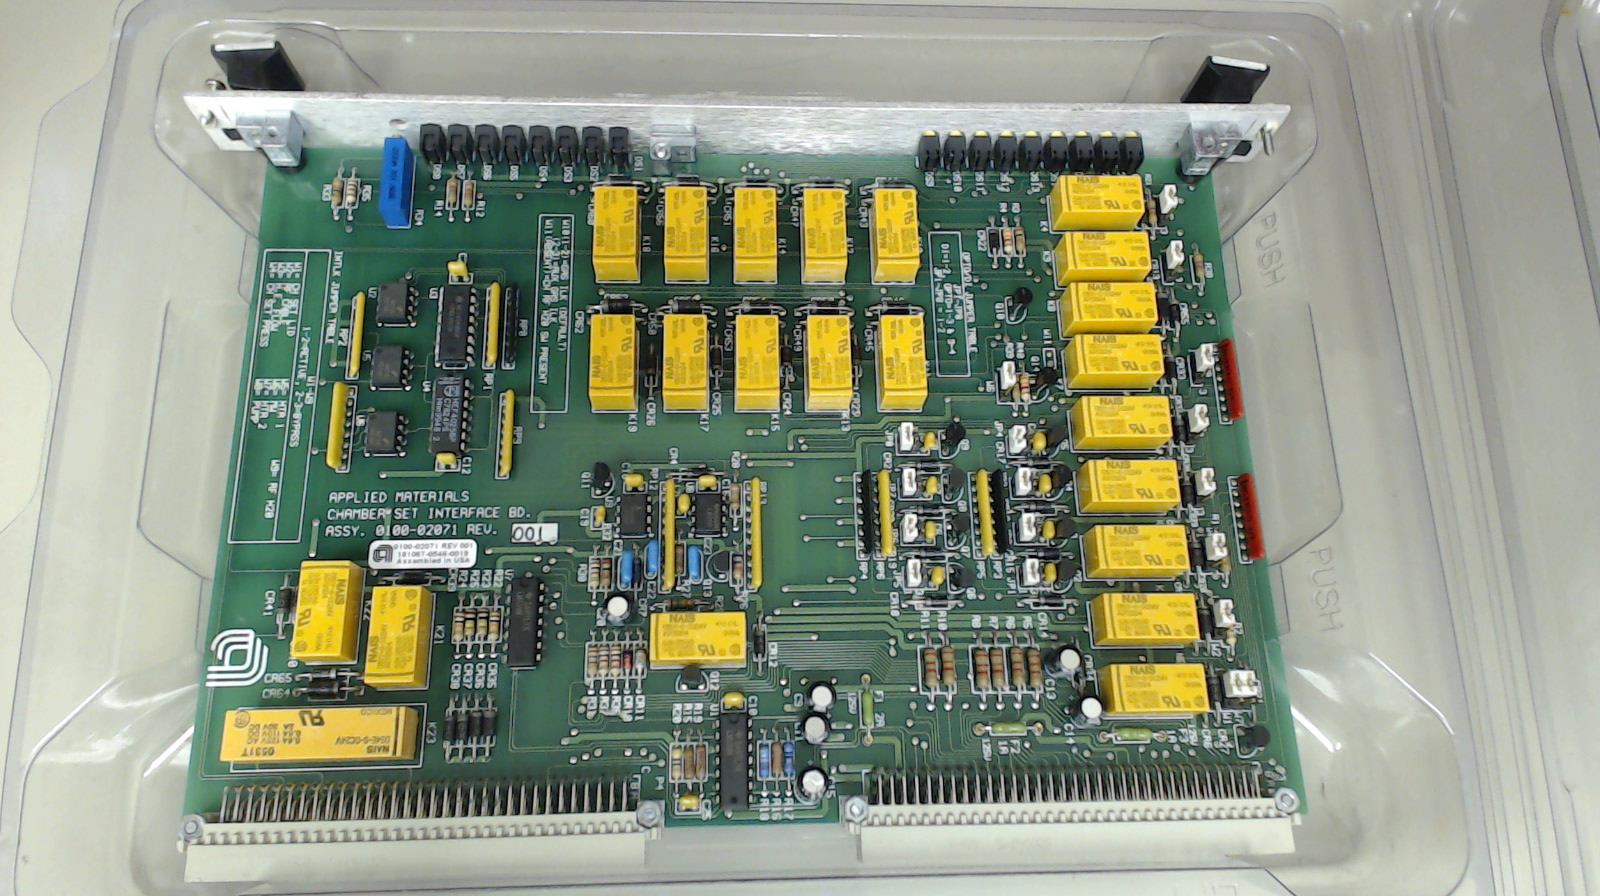 0100 02071 Applied Materials Spare Parts Xl T Printed Circuit Board Repair On Allen Bradley Magnetek Yaskawa The Pictures Provided Are For Reference Only Item That You Receive May Not Be Exactly As Pictured Below Click Any Picture A Larger View